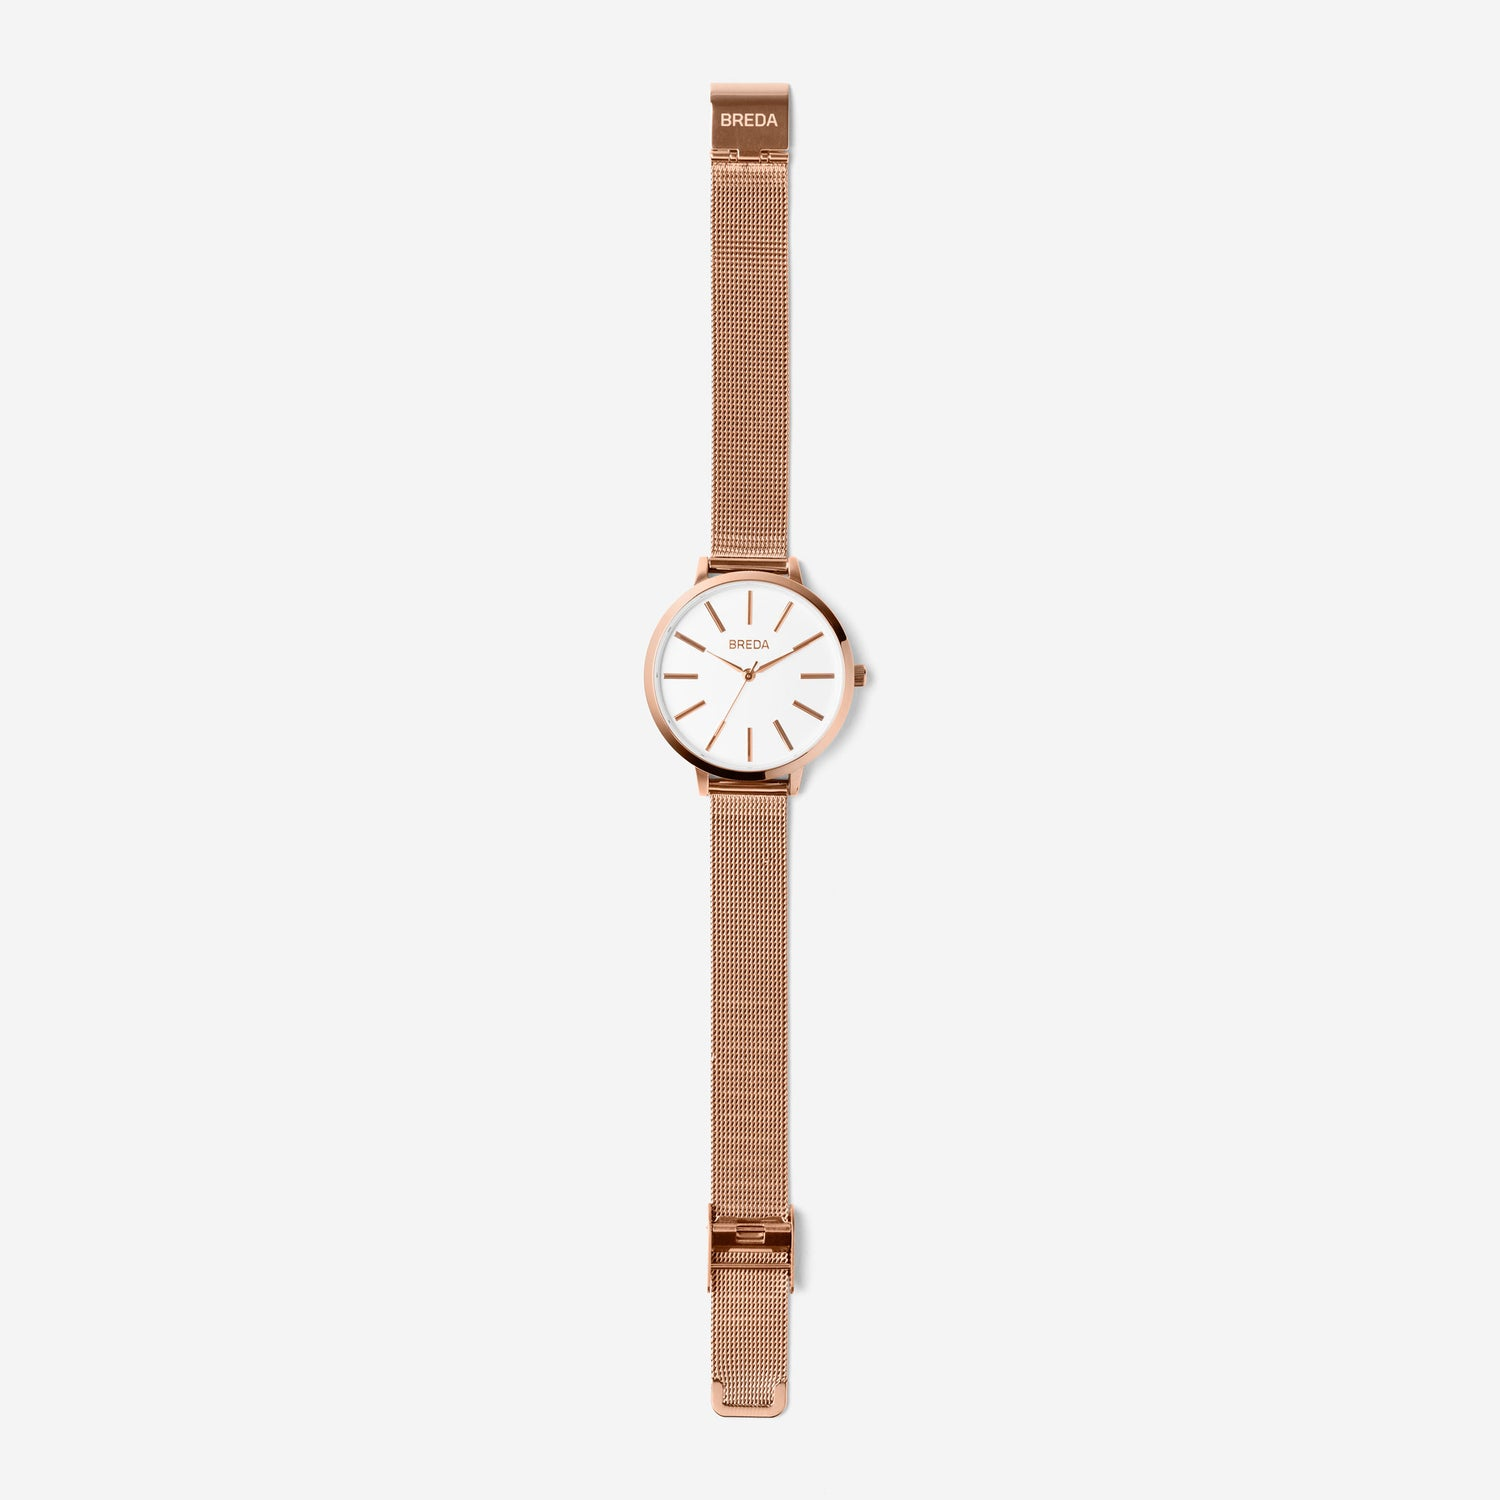 breda-joule-1731b-rosegold-mesh-watch-long